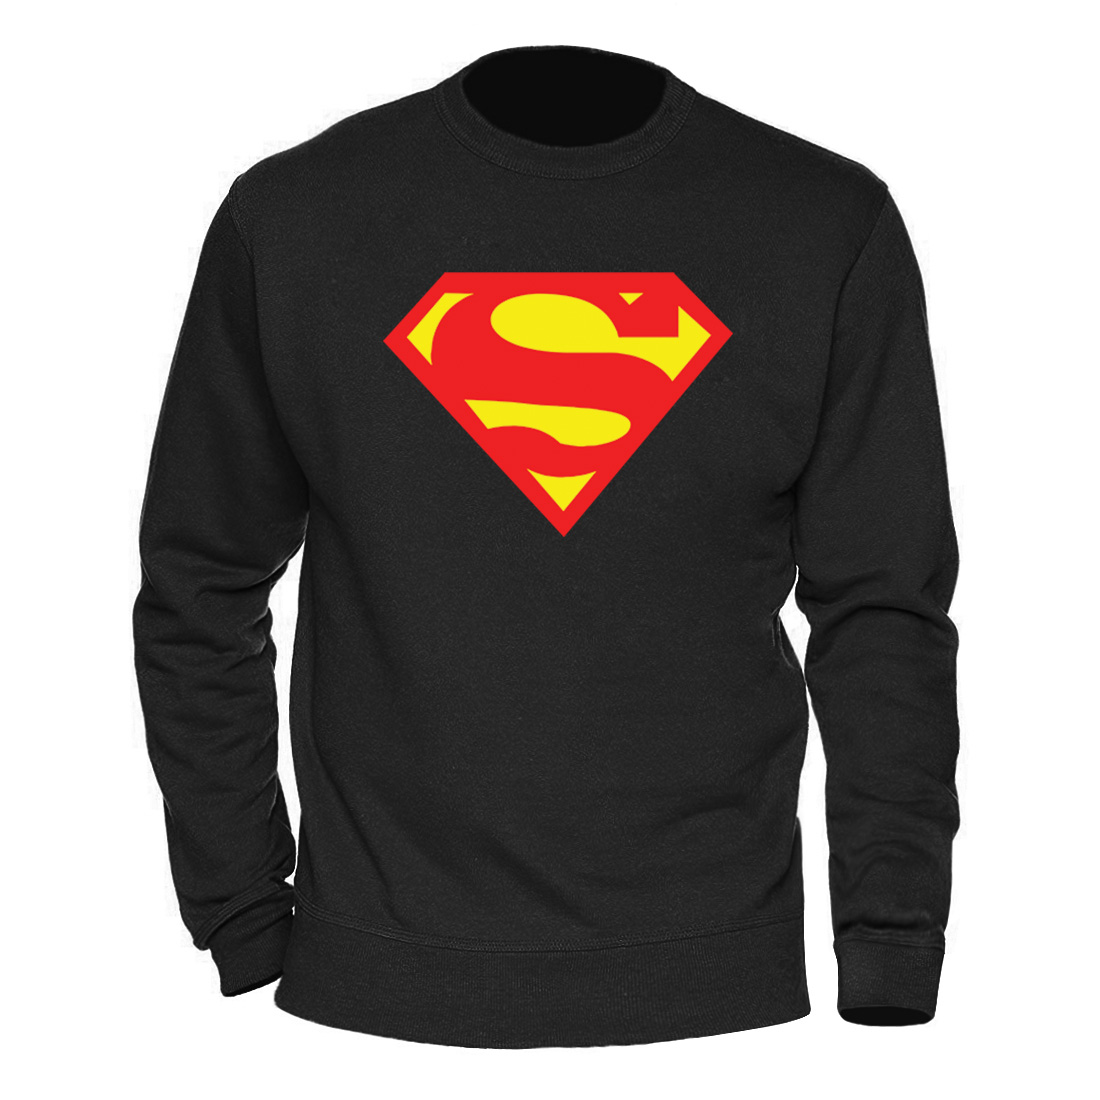 2020 Autumn New Men's Hoodies Superman Sweatshirts Fitness Streetwear Male Pullovers Hot Sale Cotton Tops Casual Men Clothing